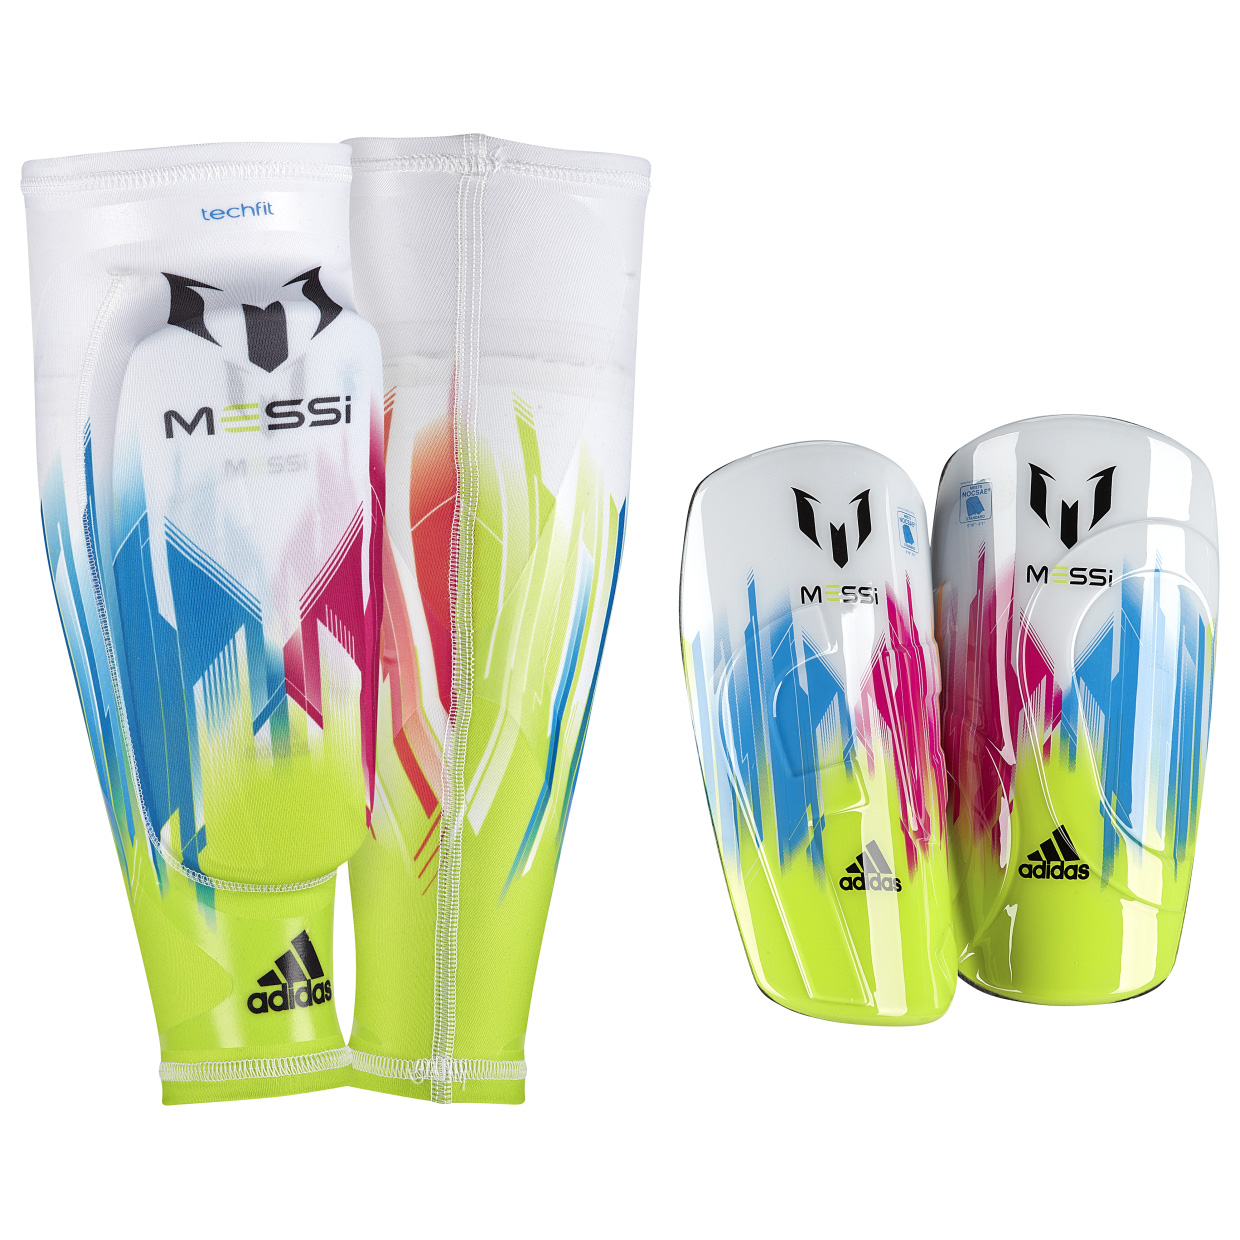 Adidas F50 Pro Lite Messi Shinguards White